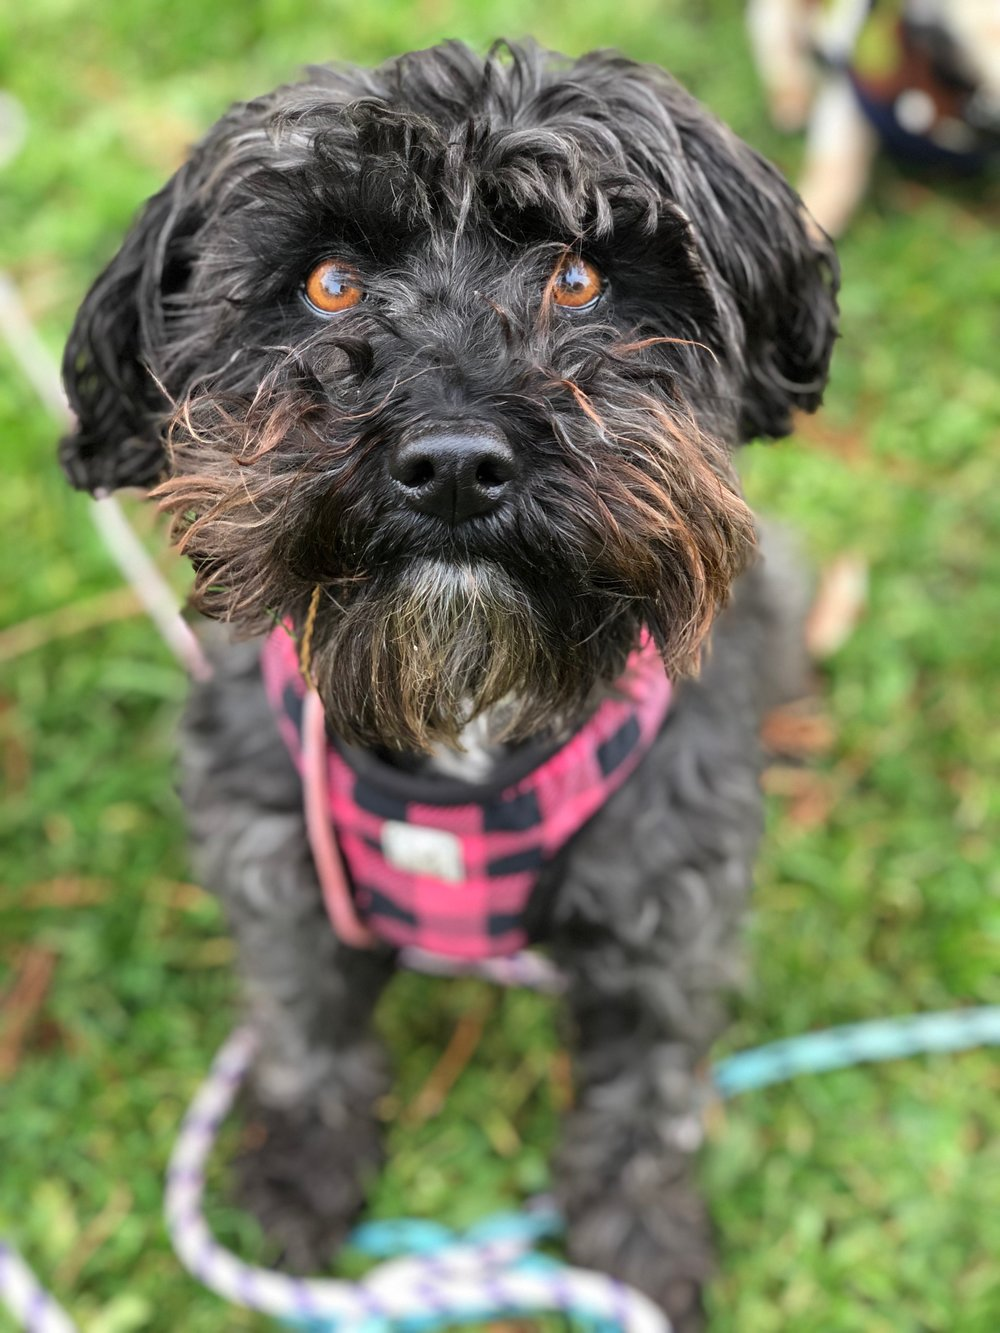 MISS SANCHEZ - CURRENTLY ON MATERNITY LEAVEBREED: Schnoodle (Schnauzer + Poodle) | RESCUED Tijuana Street DogLOVES: people, exploring her world, being smart, yelling and lunging at other dogsHATES: other dogs she doesn't know